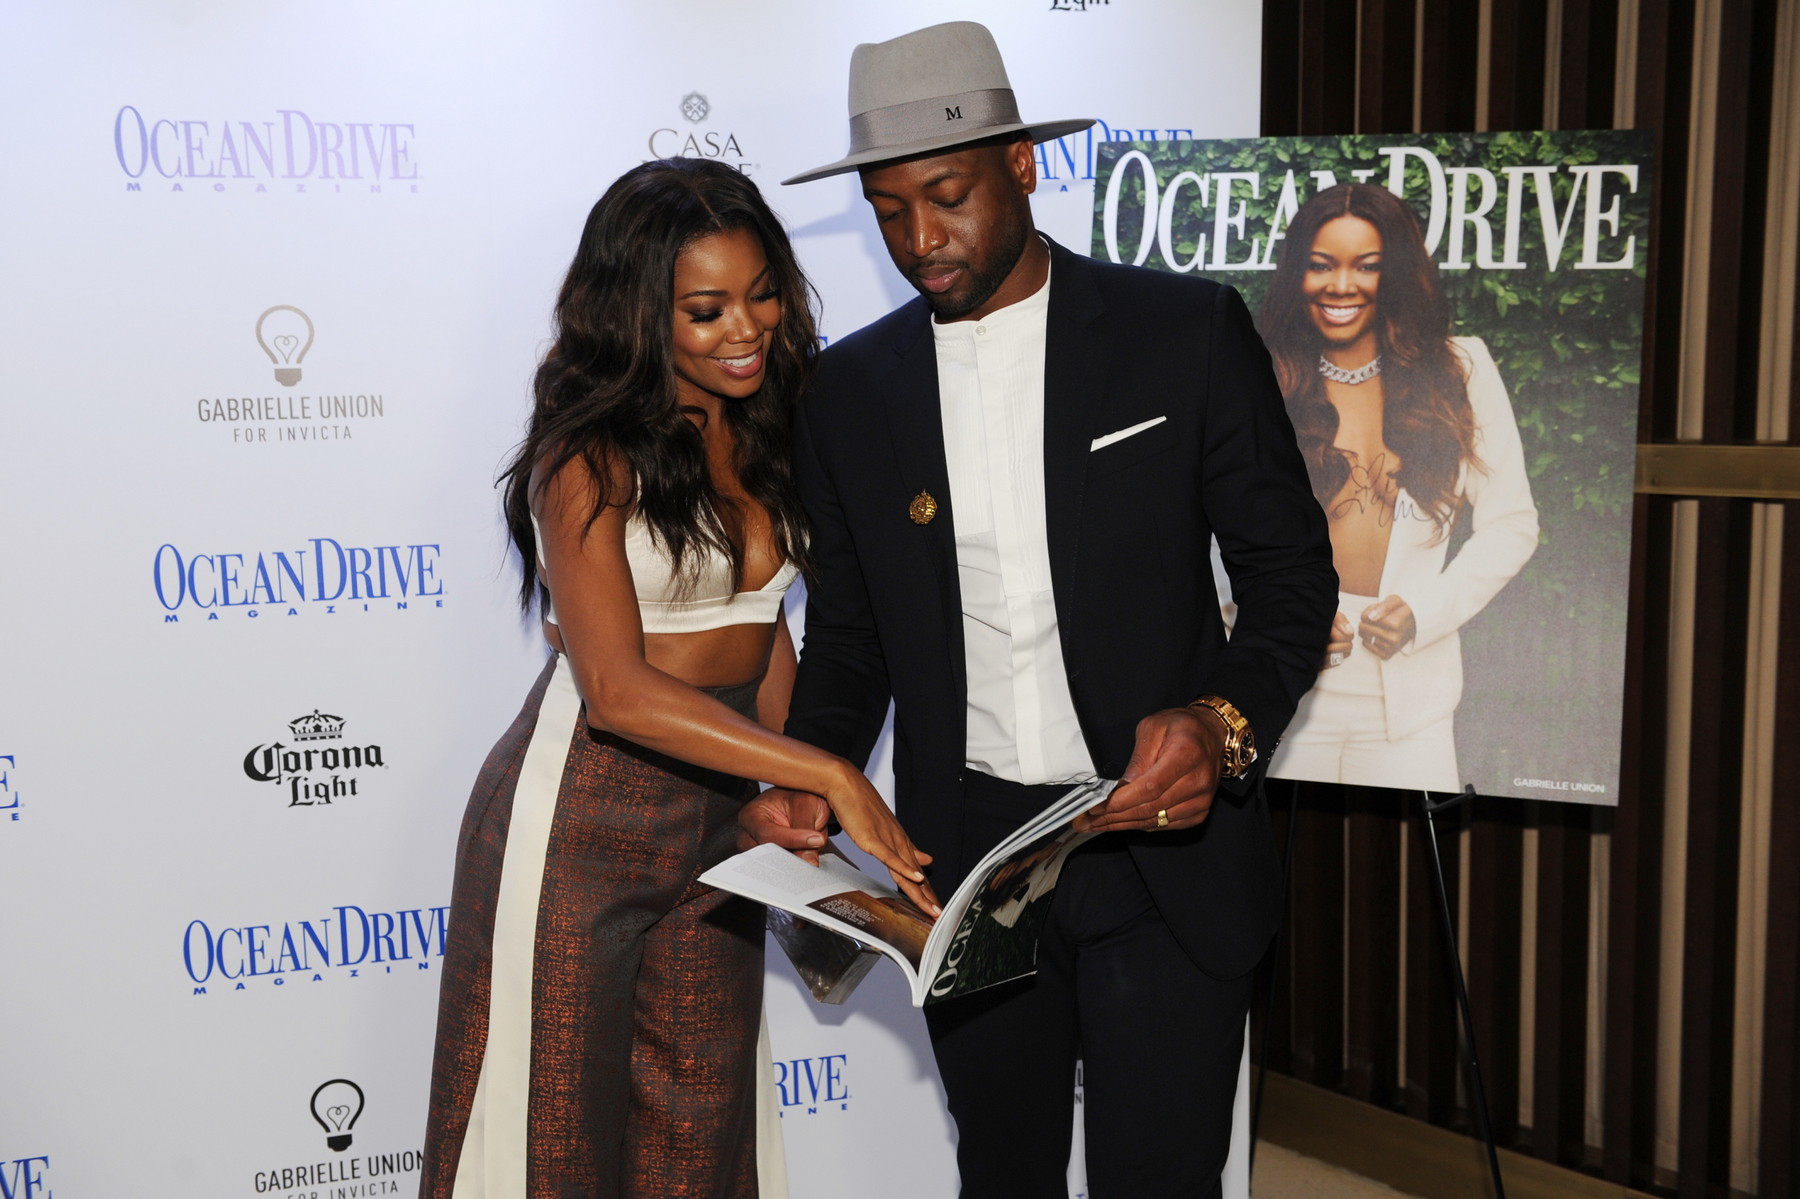 Ocean Drive Magazine Celebrated Its June Issue with Cover Star Gabrielle Union